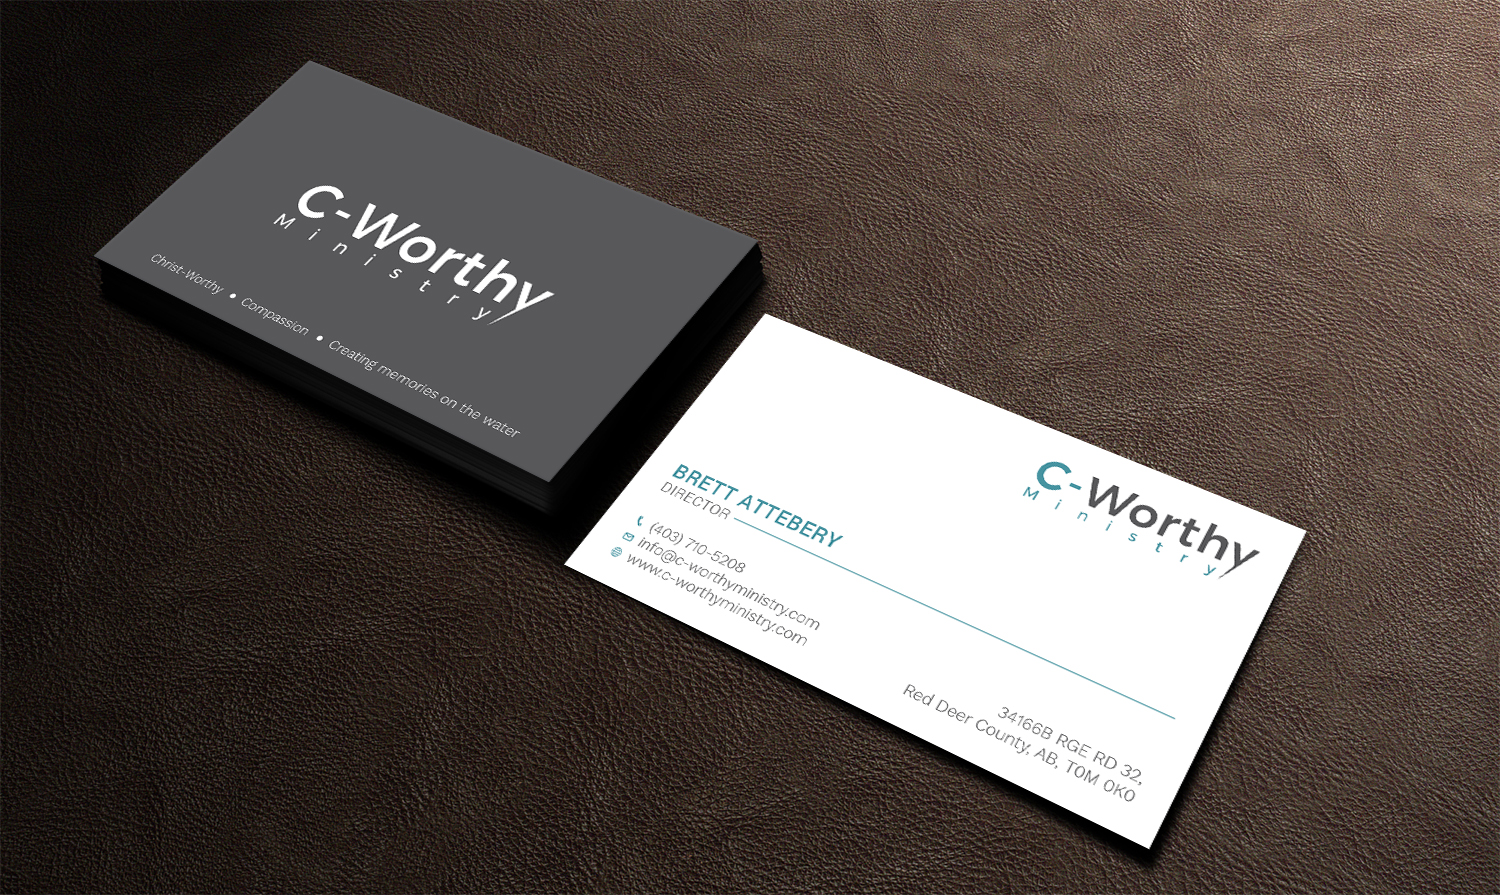 Personable, Elegant, Ministry Business Card Design for a Company by ...